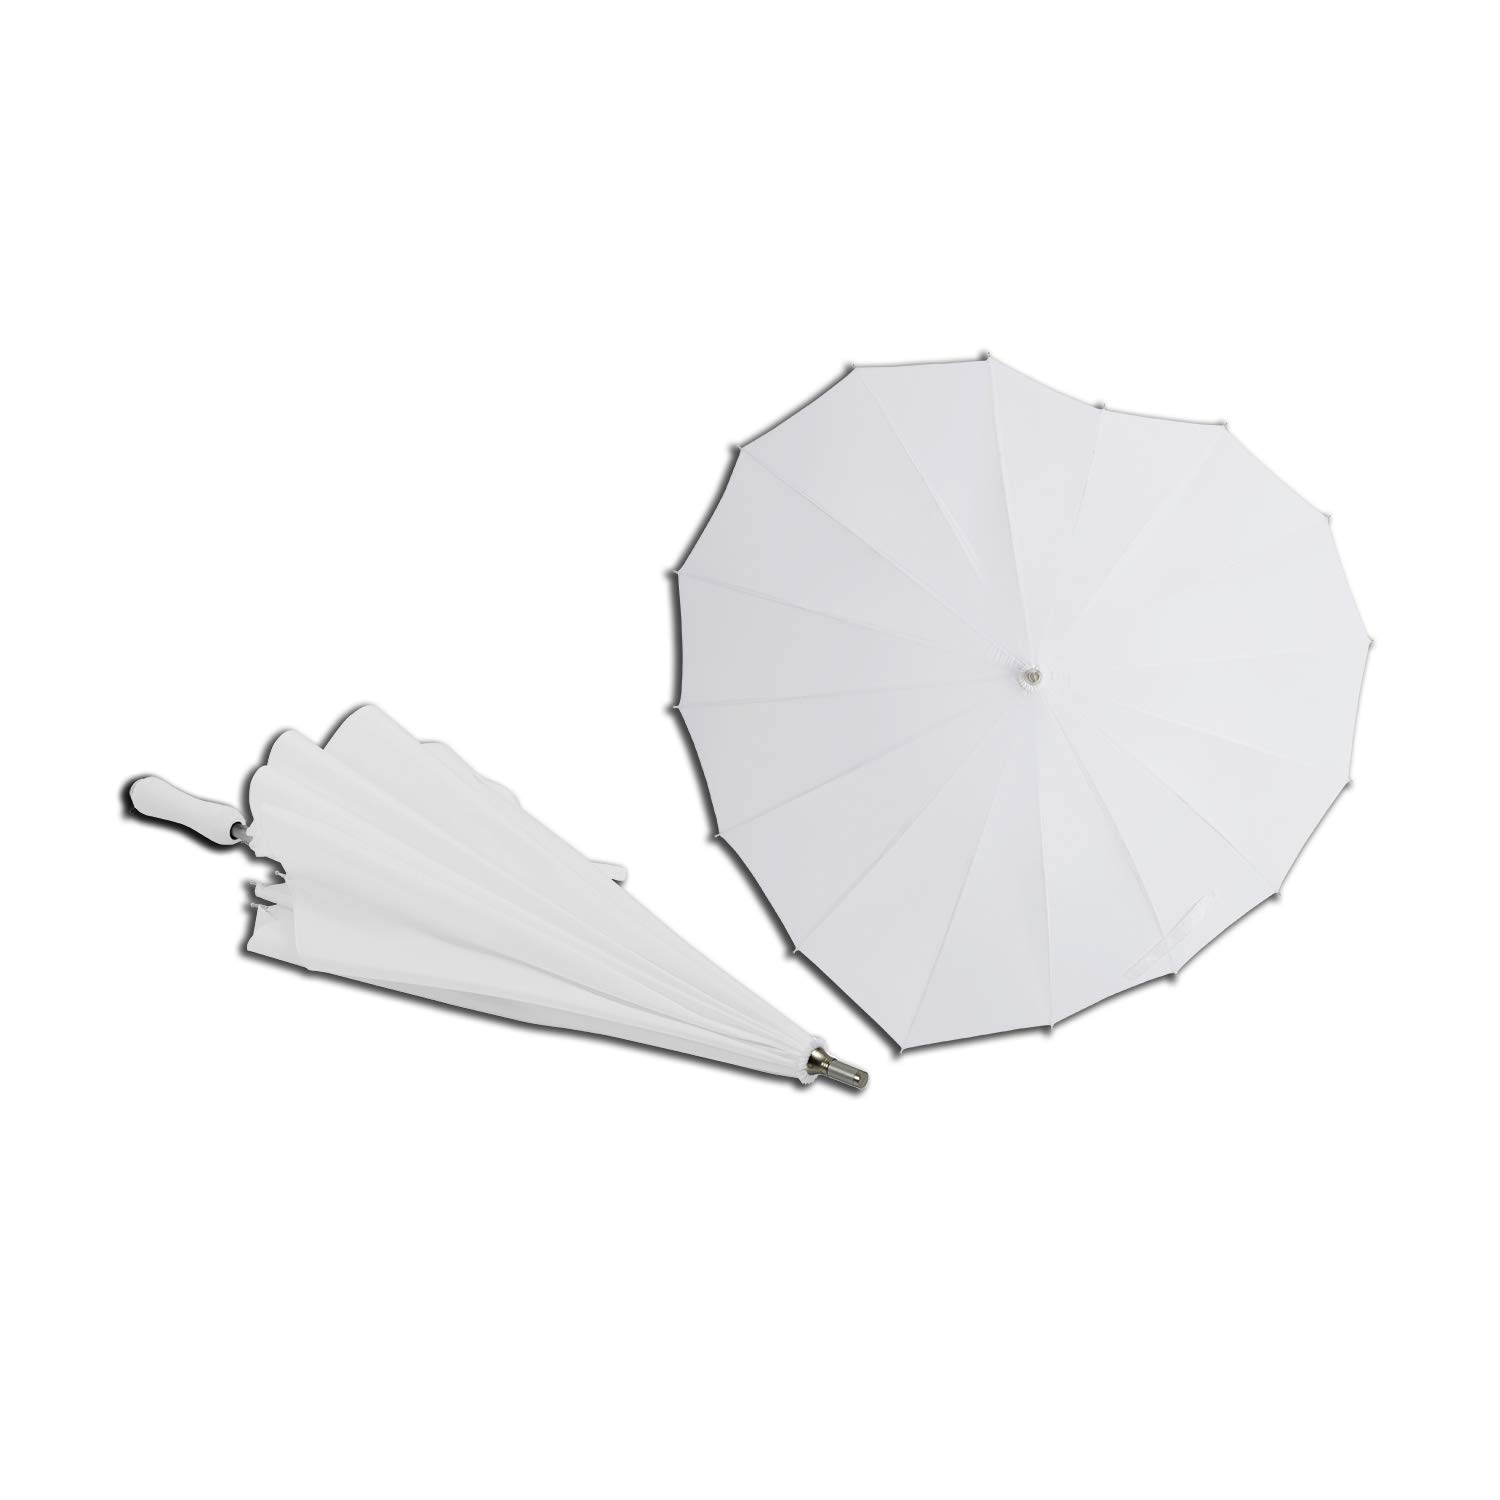 AoGV White Heart Shaped Wedding Parasol Umbrella Bride, Engagement Photography Photo Props